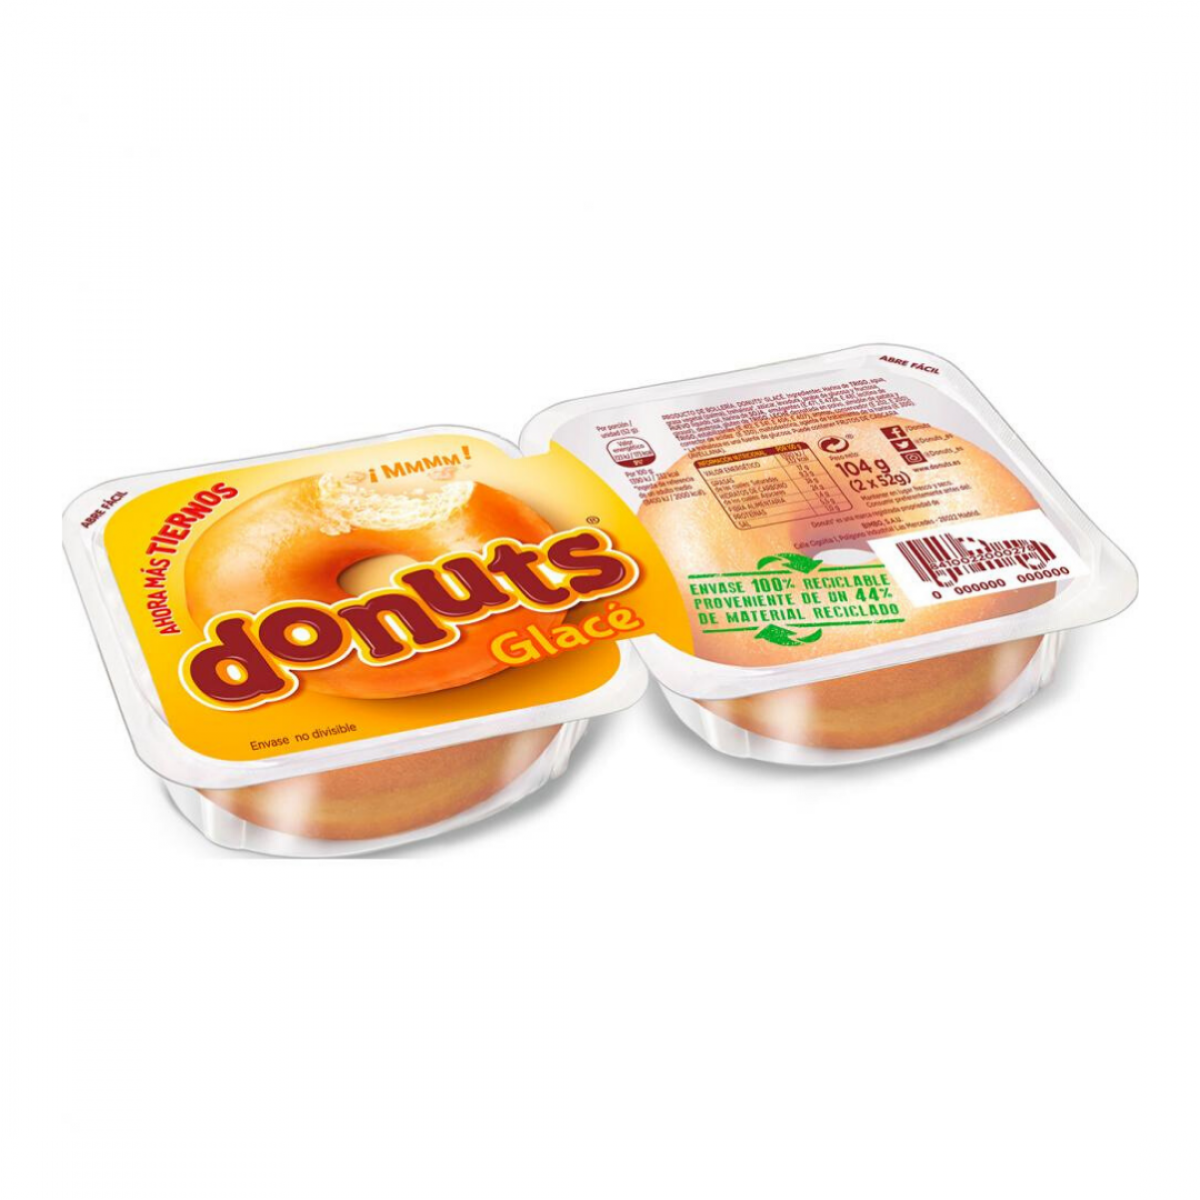 Donuts Glace 2 unidades